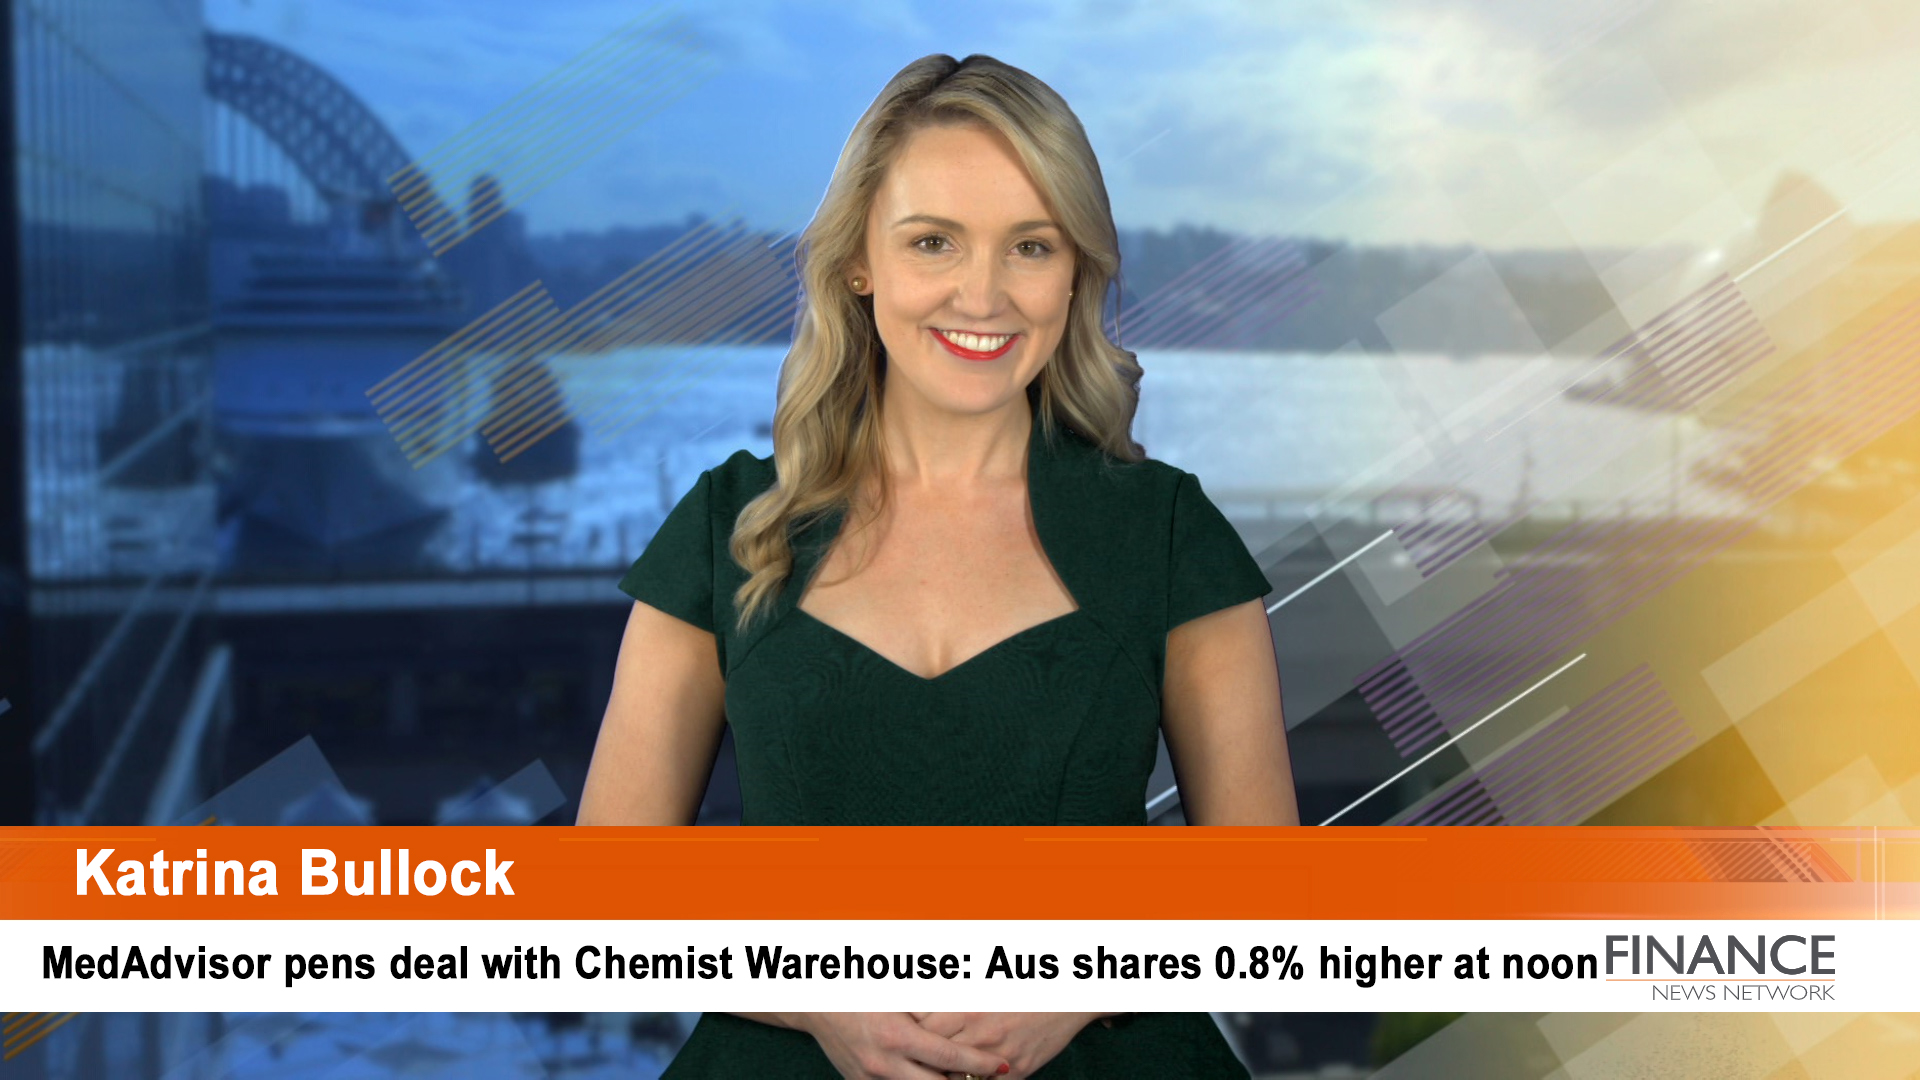 MedAdvisor (ASX:MDR) pens deal with Chemist Warehouse: Aus shares 0.8% higher at noon